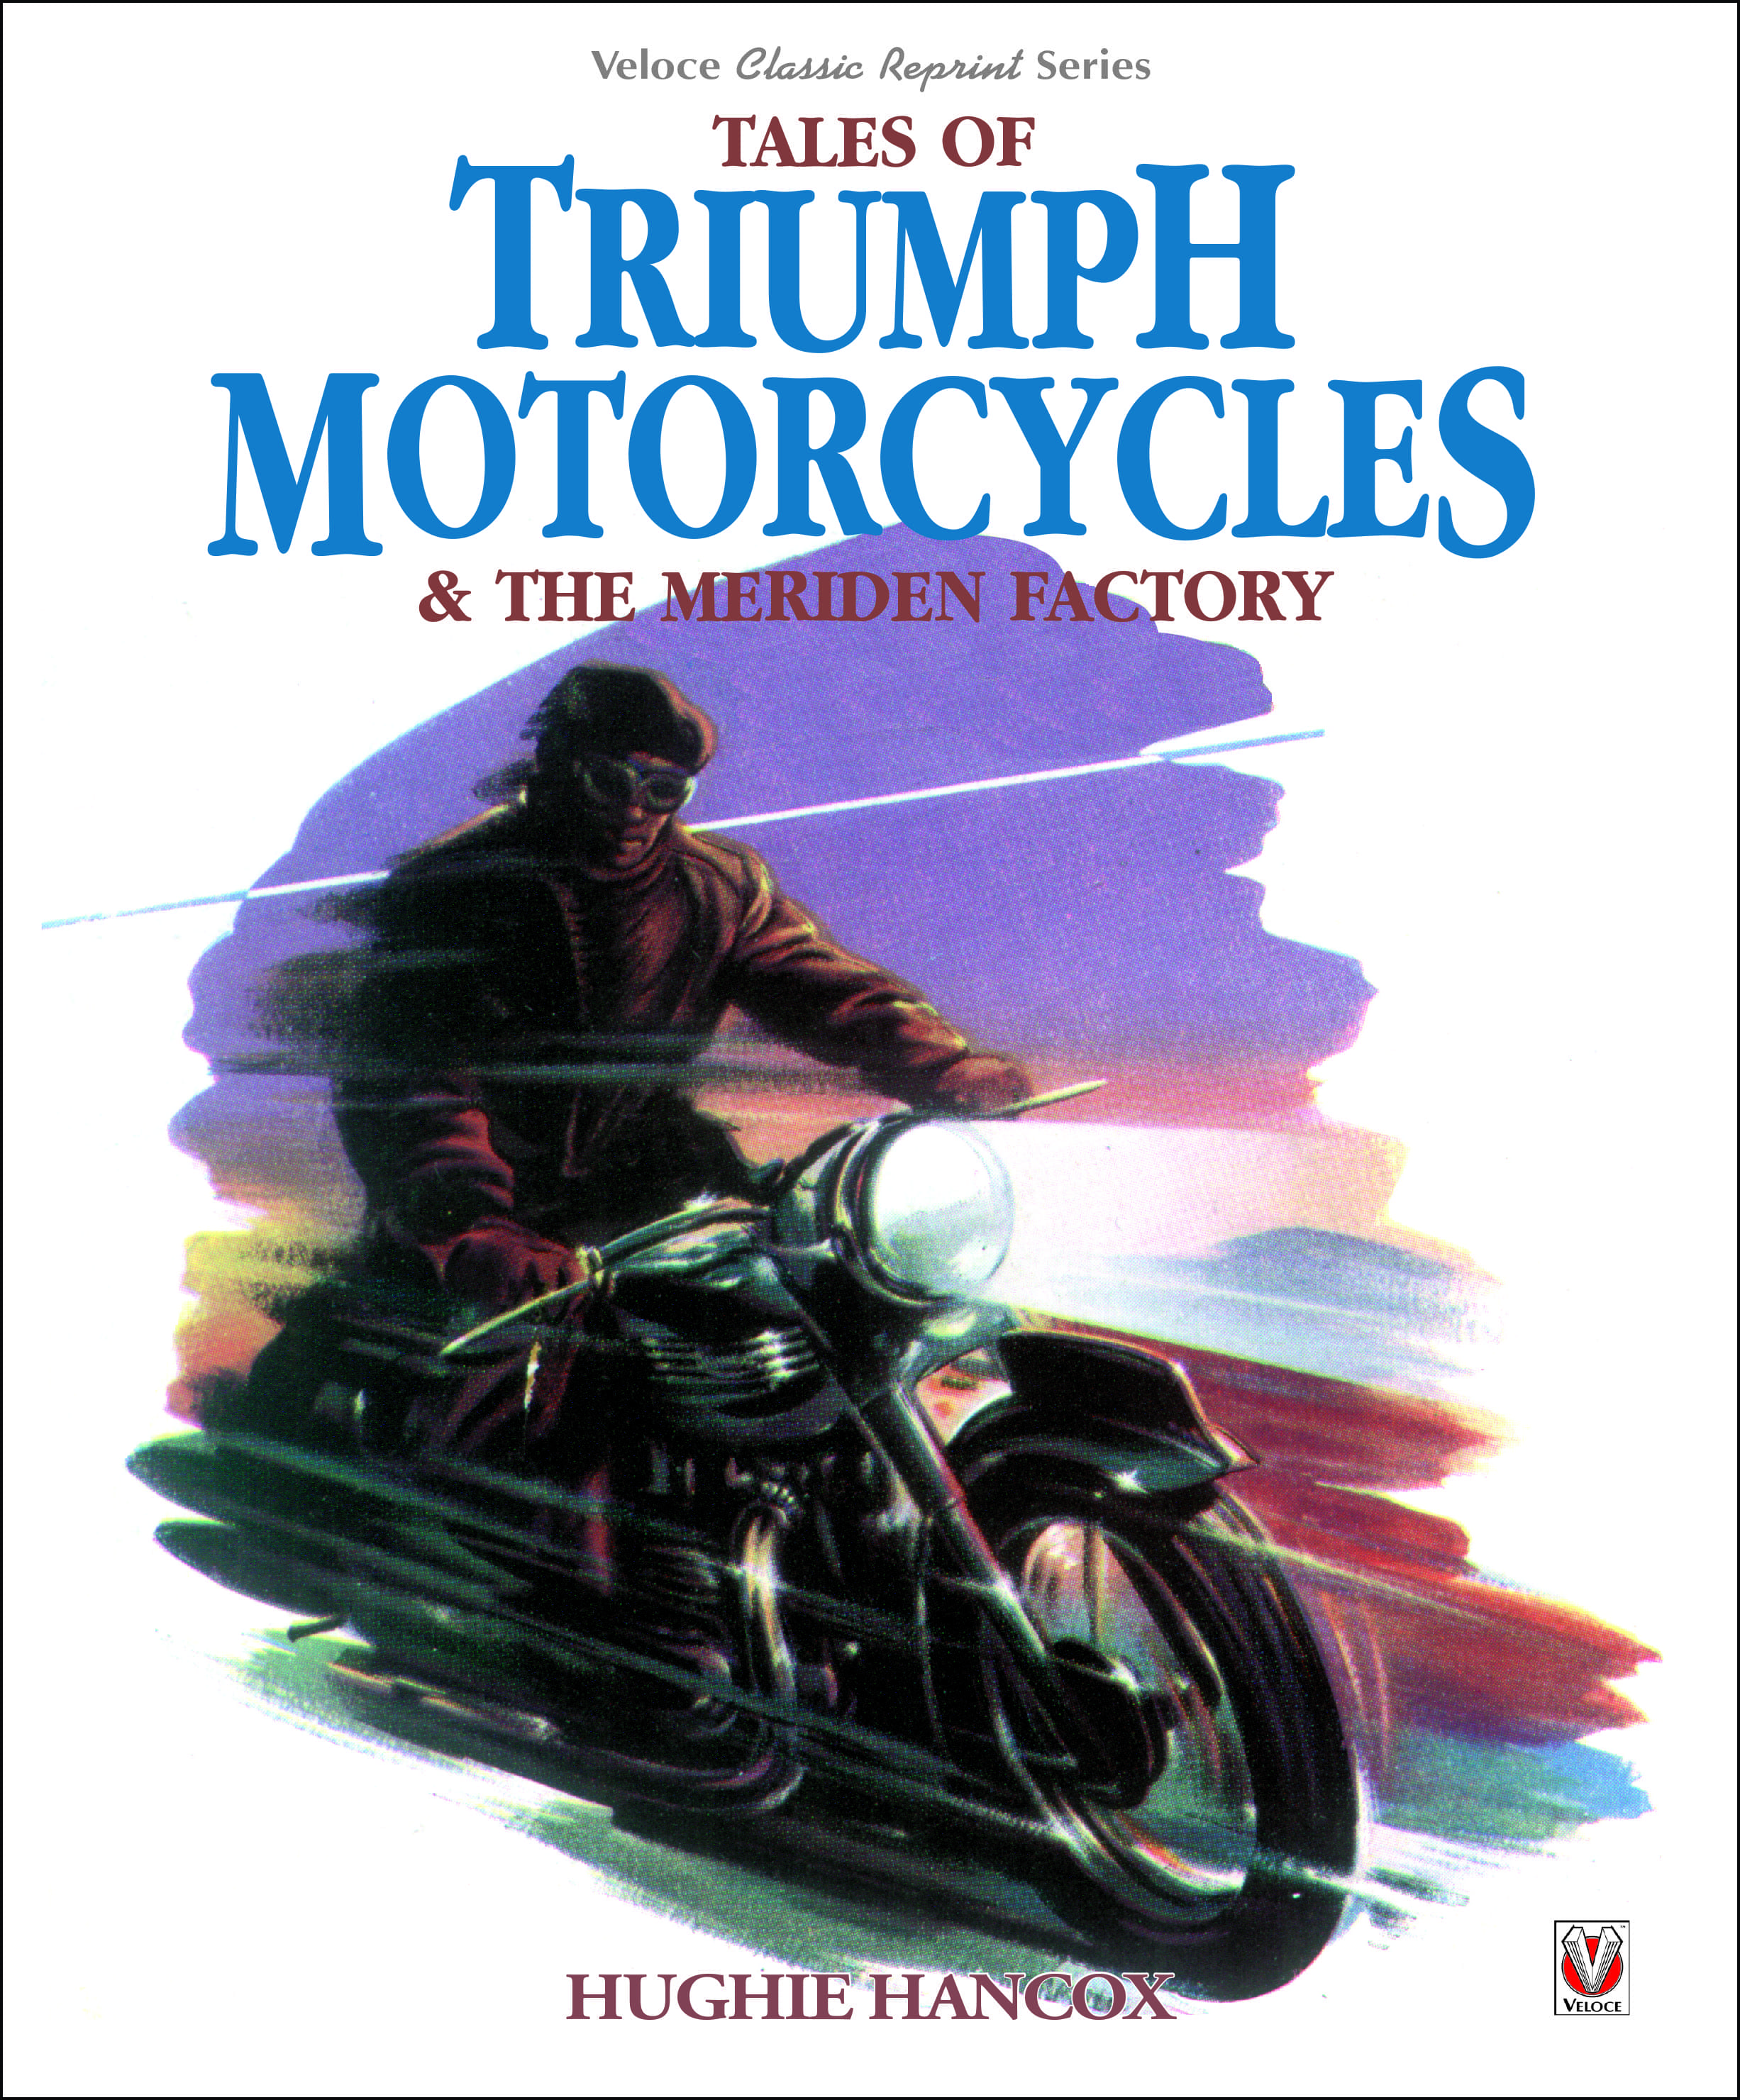 Tales of Triumph Motorcycles & the Meriden Factory – A Veloce Classic Reprint cover